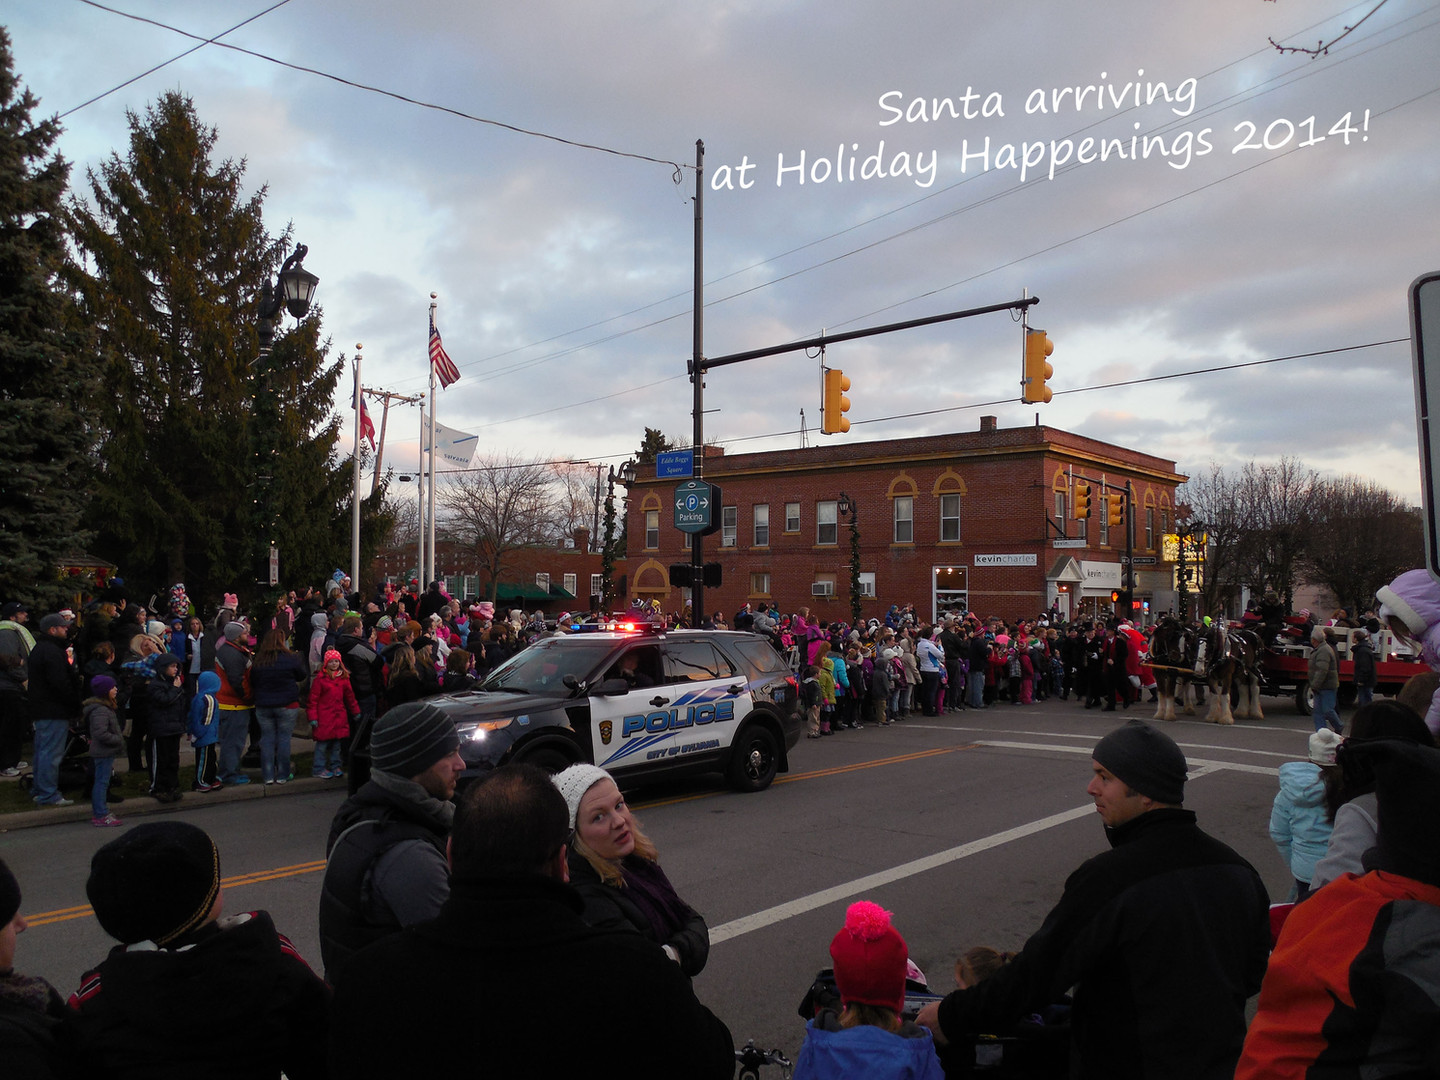 Santa arrives in the parade